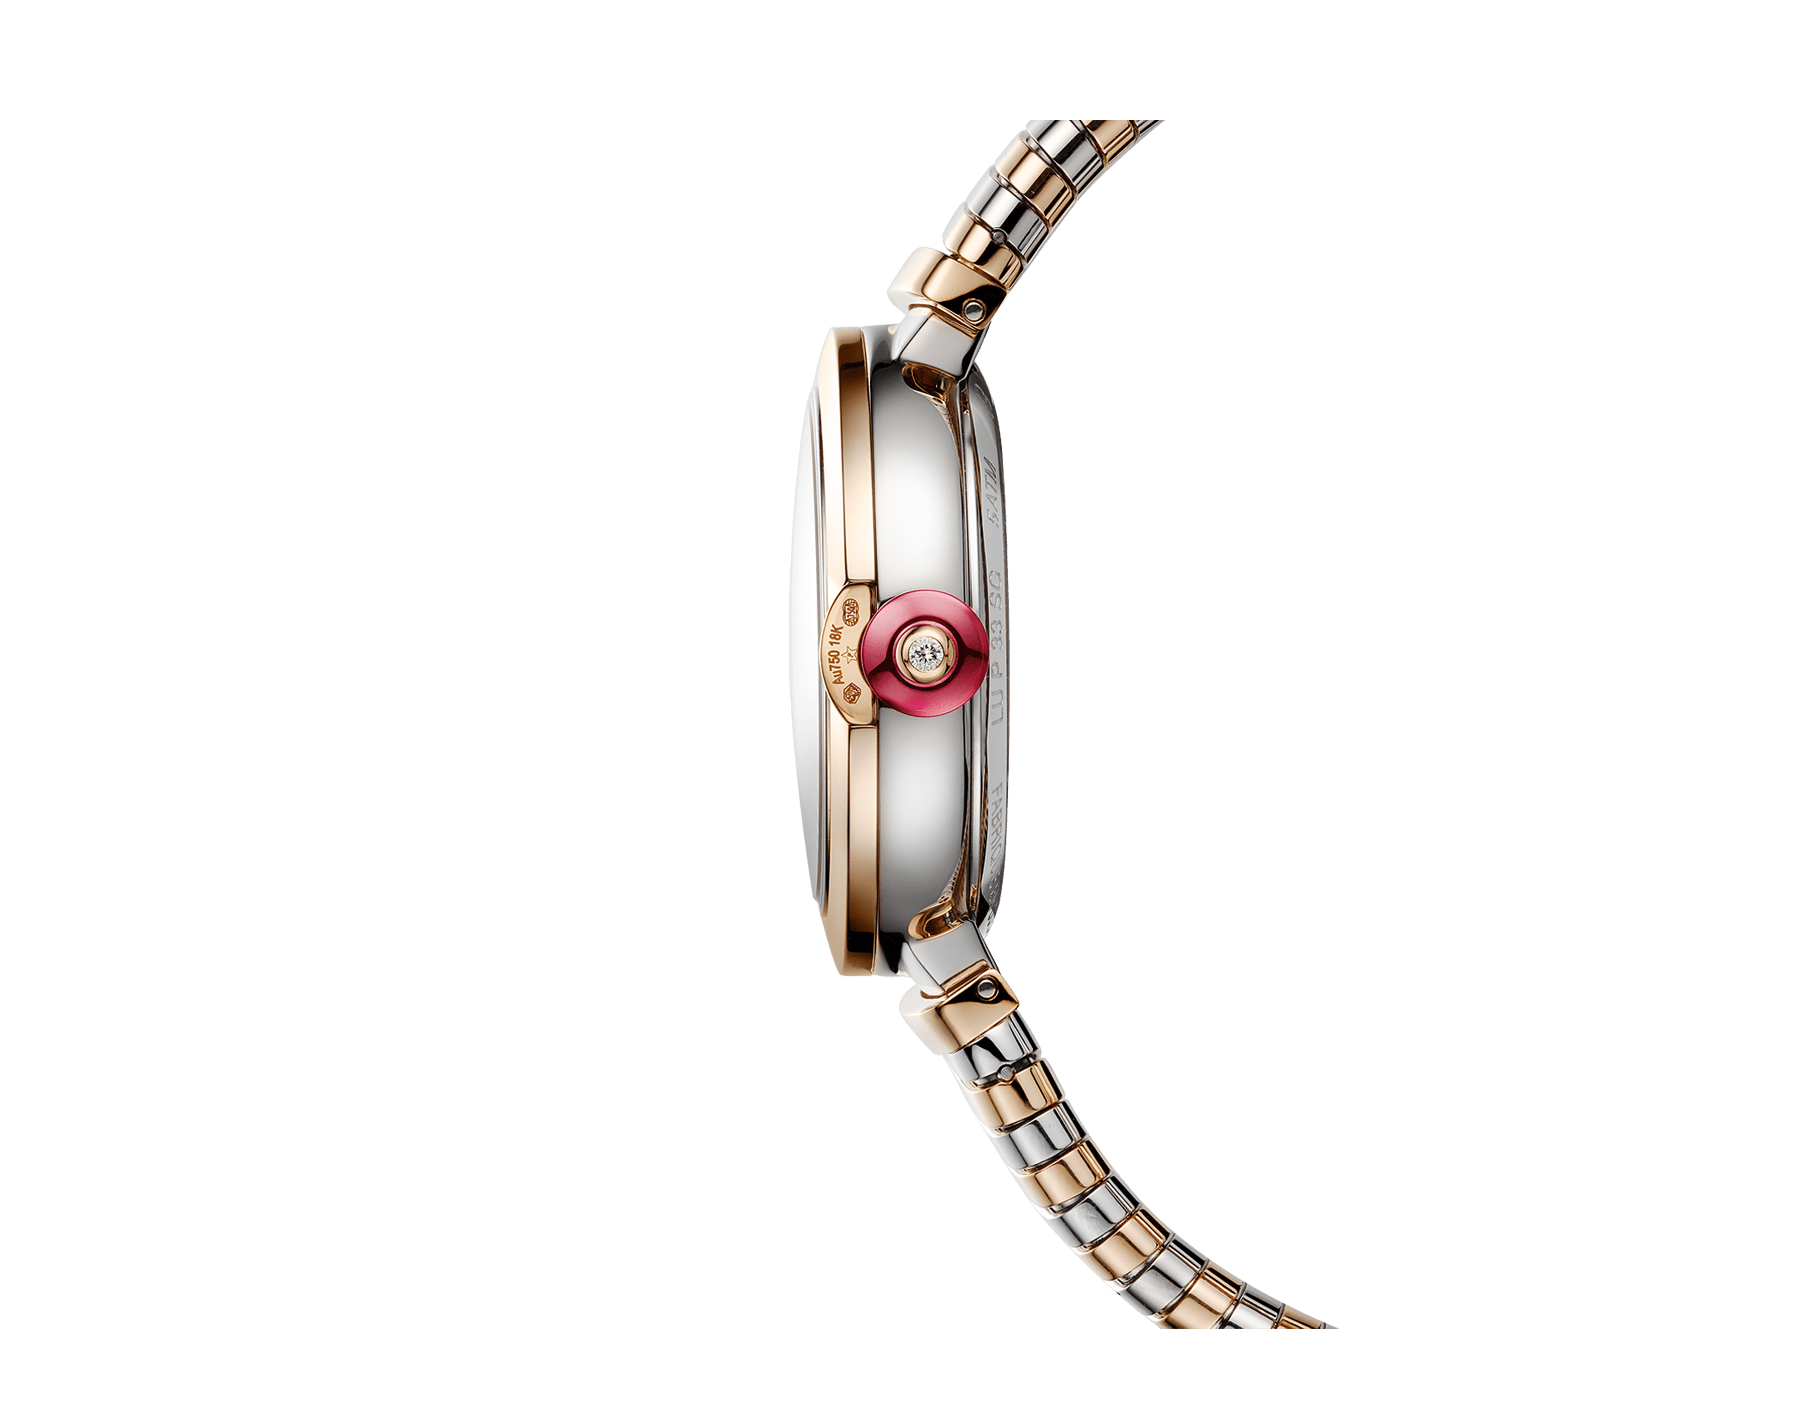 LVCEA Tubogas watch in 18 kt rose gold and stainless steel case and tubogas bracelet, with white mother-of-pearl dial and diamond indexes 102954 image 2